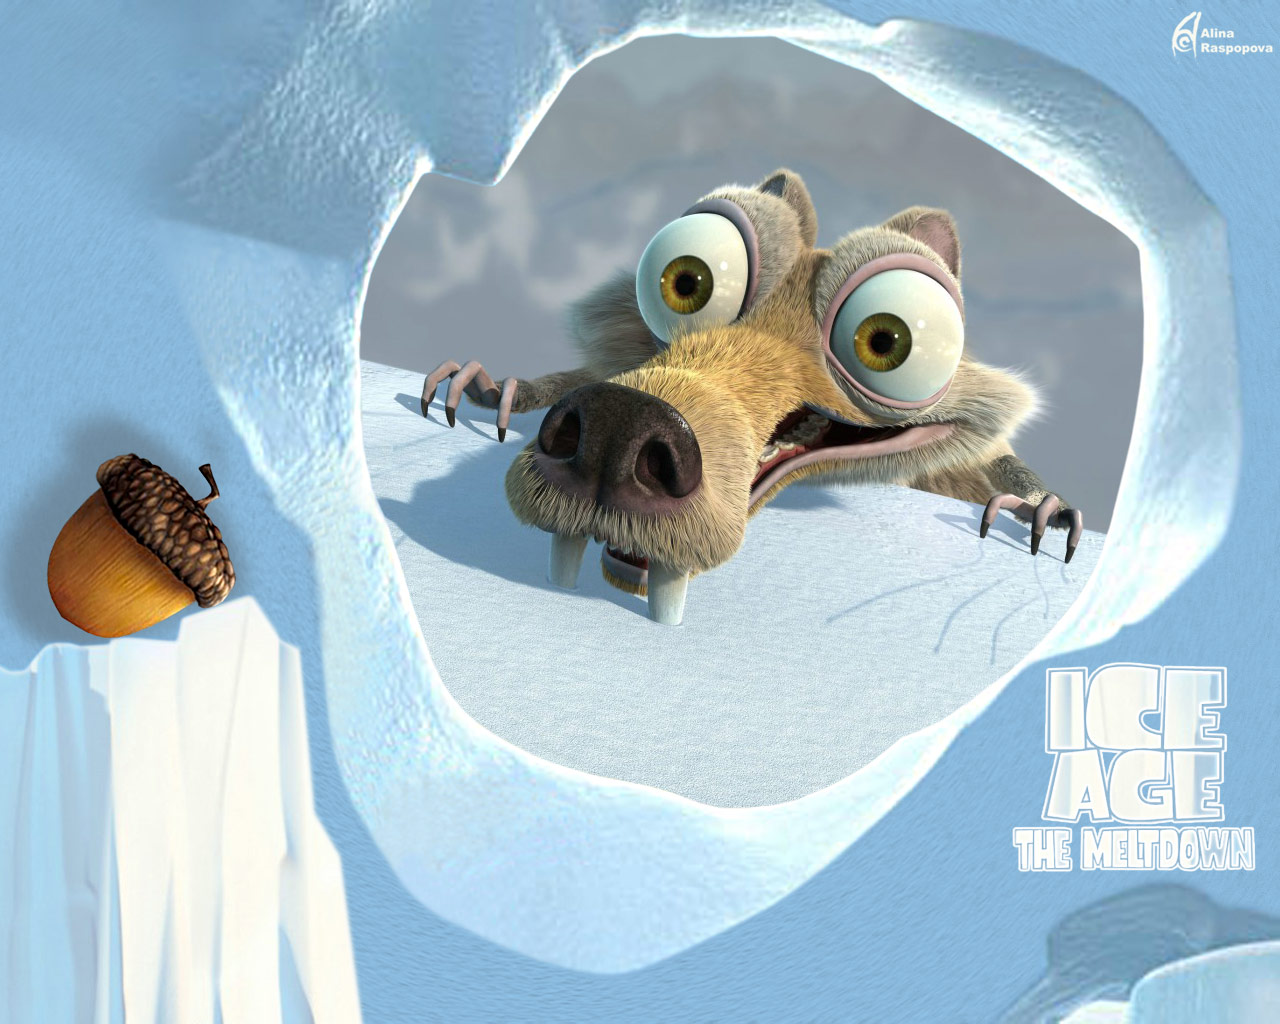 Ice age 2 wallpaper 1